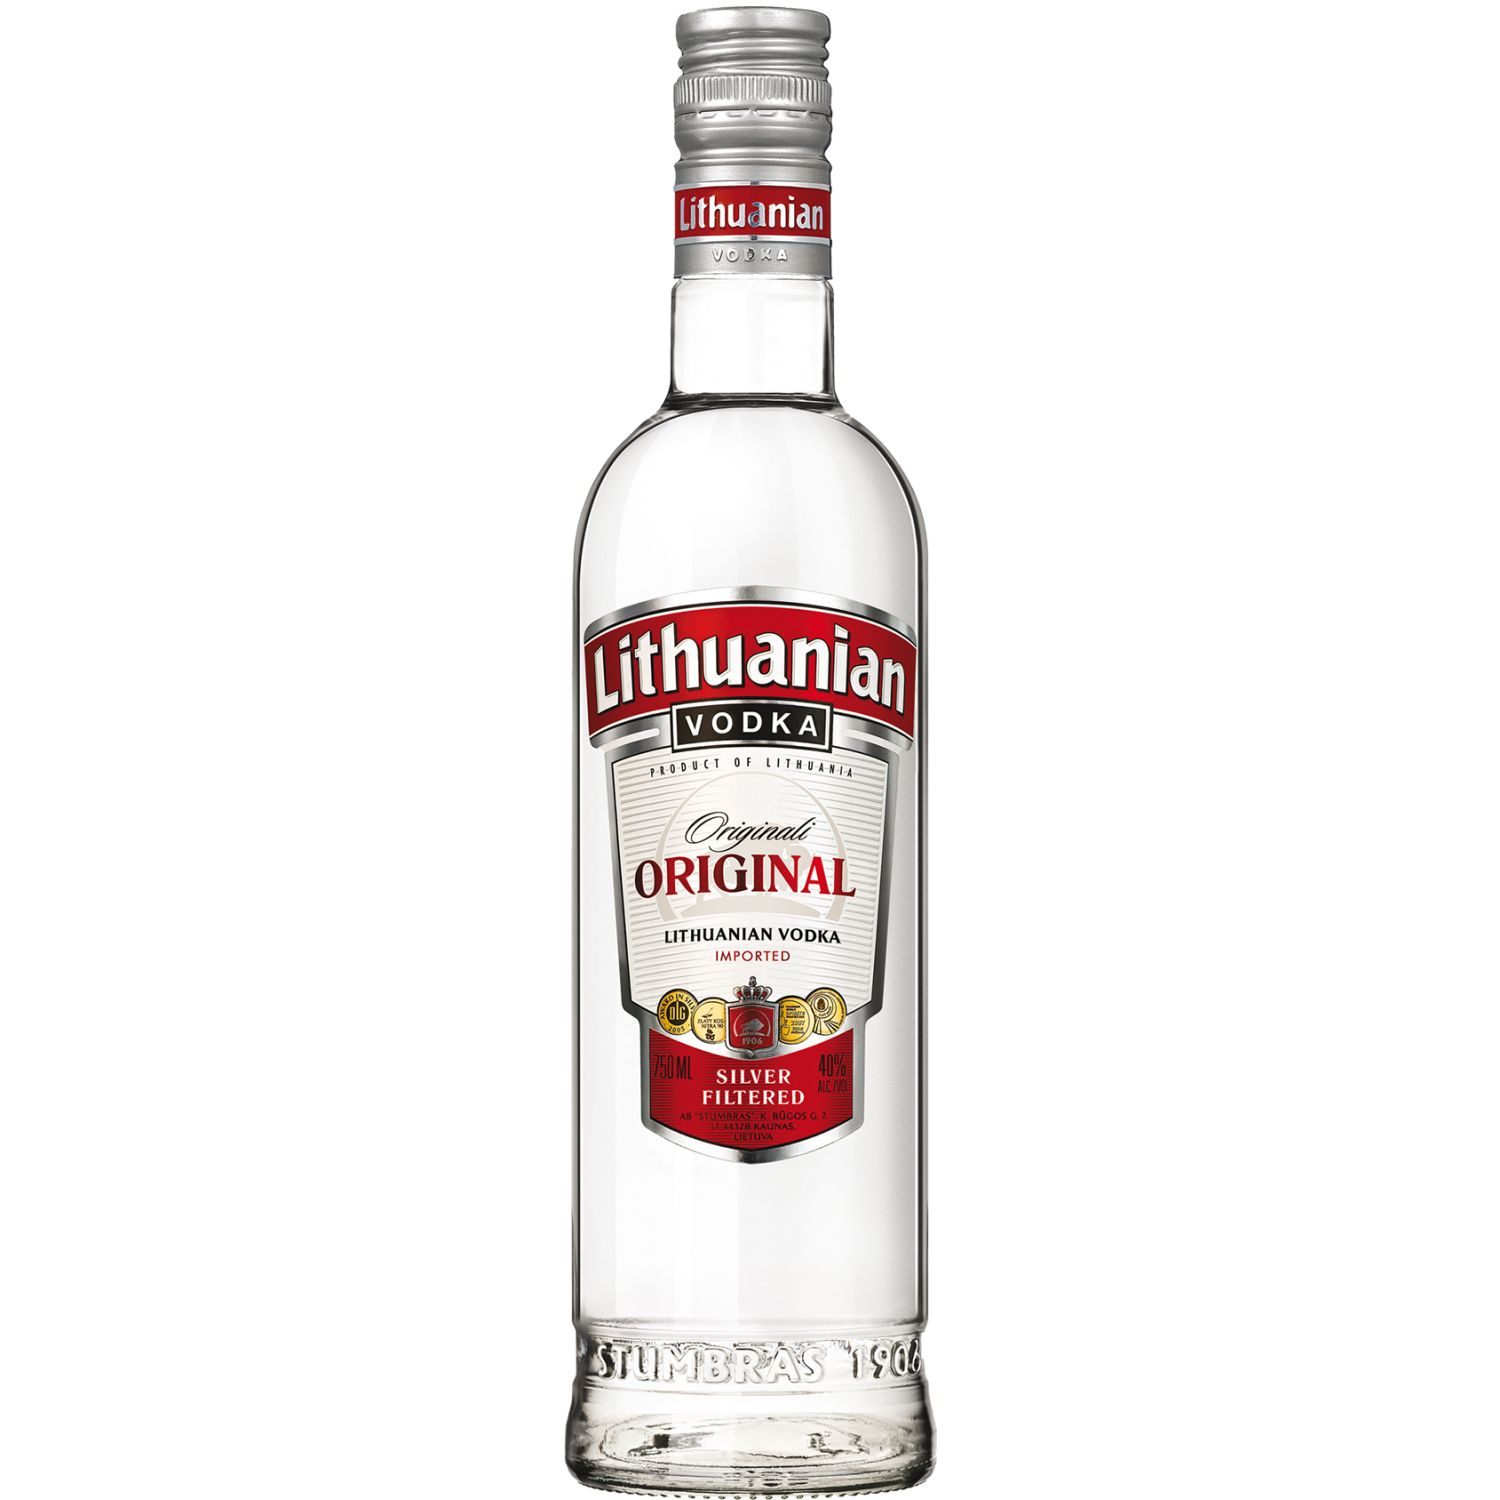 LITHUANIAM Vodka Classic X 1 Lt. SIN COLOR Vodka